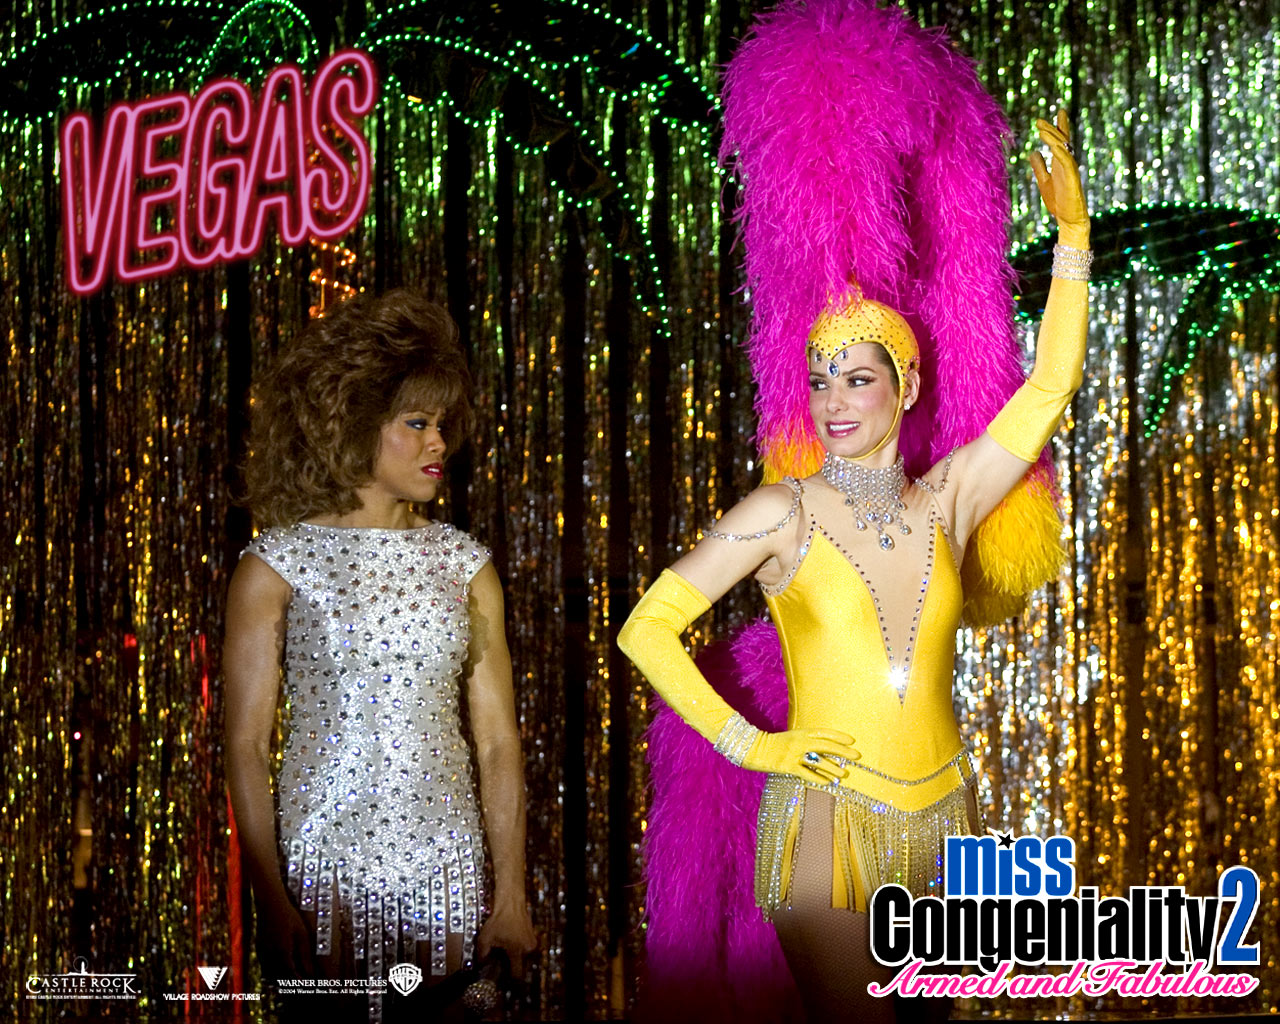 HQ Miss Congeniality 2: Armed And Fabulous Wallpapers | File 429.89Kb